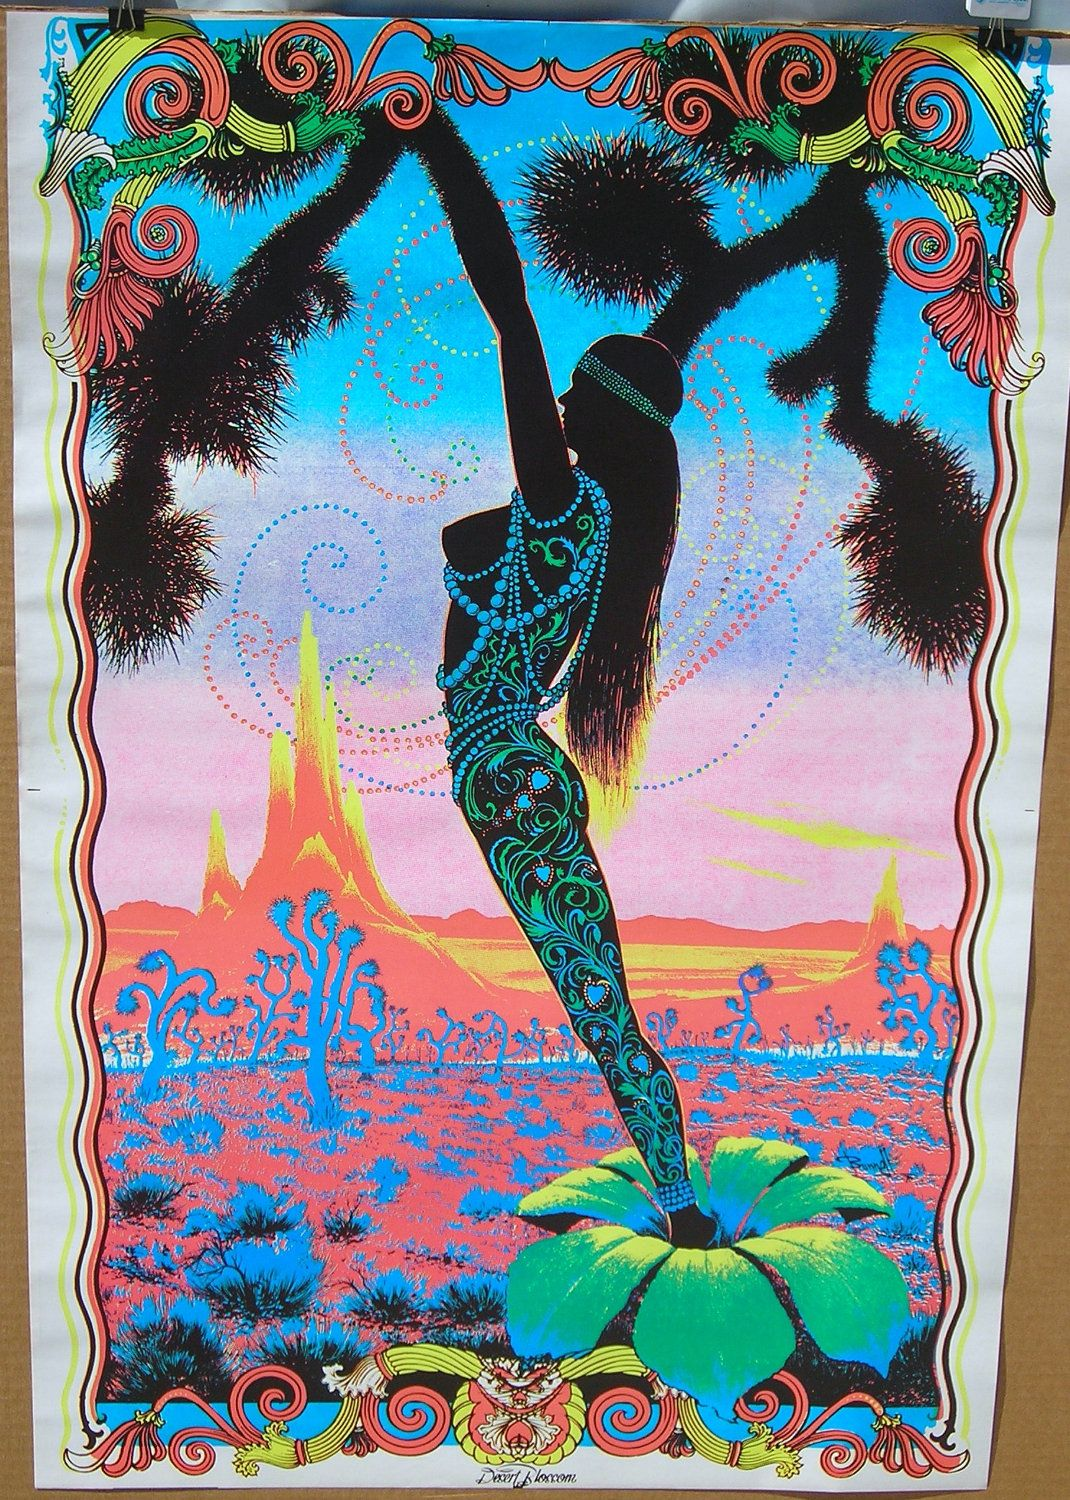 Vintage 1970's Desert Blossom Black Light Hippie Poster ...